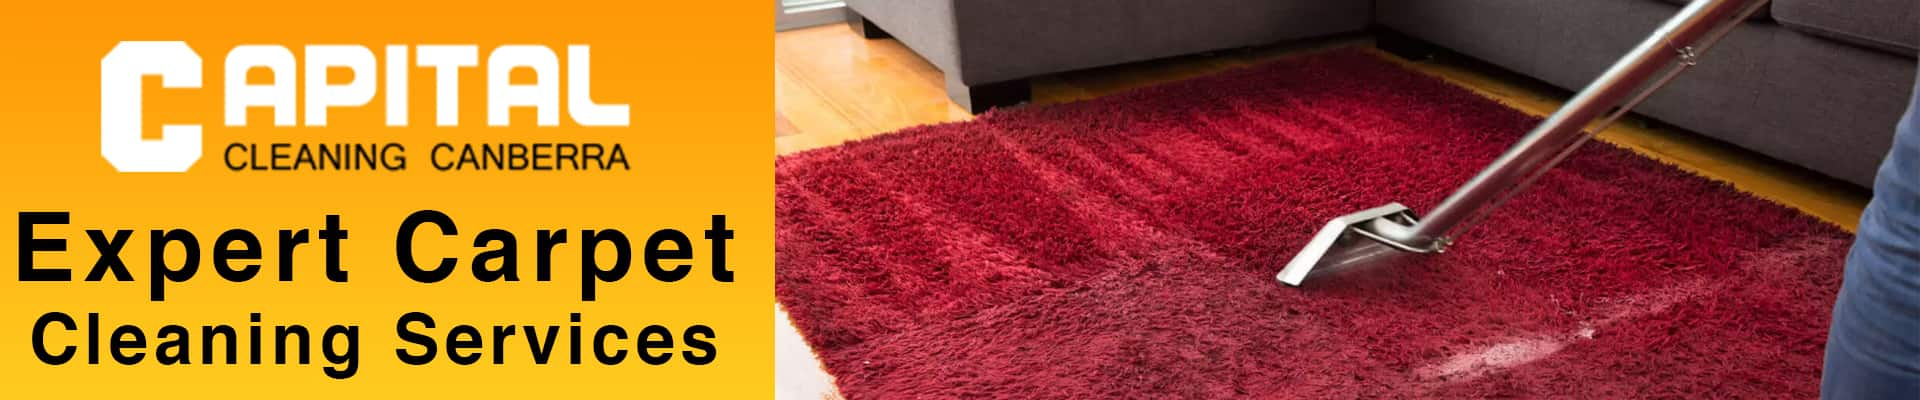 Expert Carpet Cleaning Services Charnwood